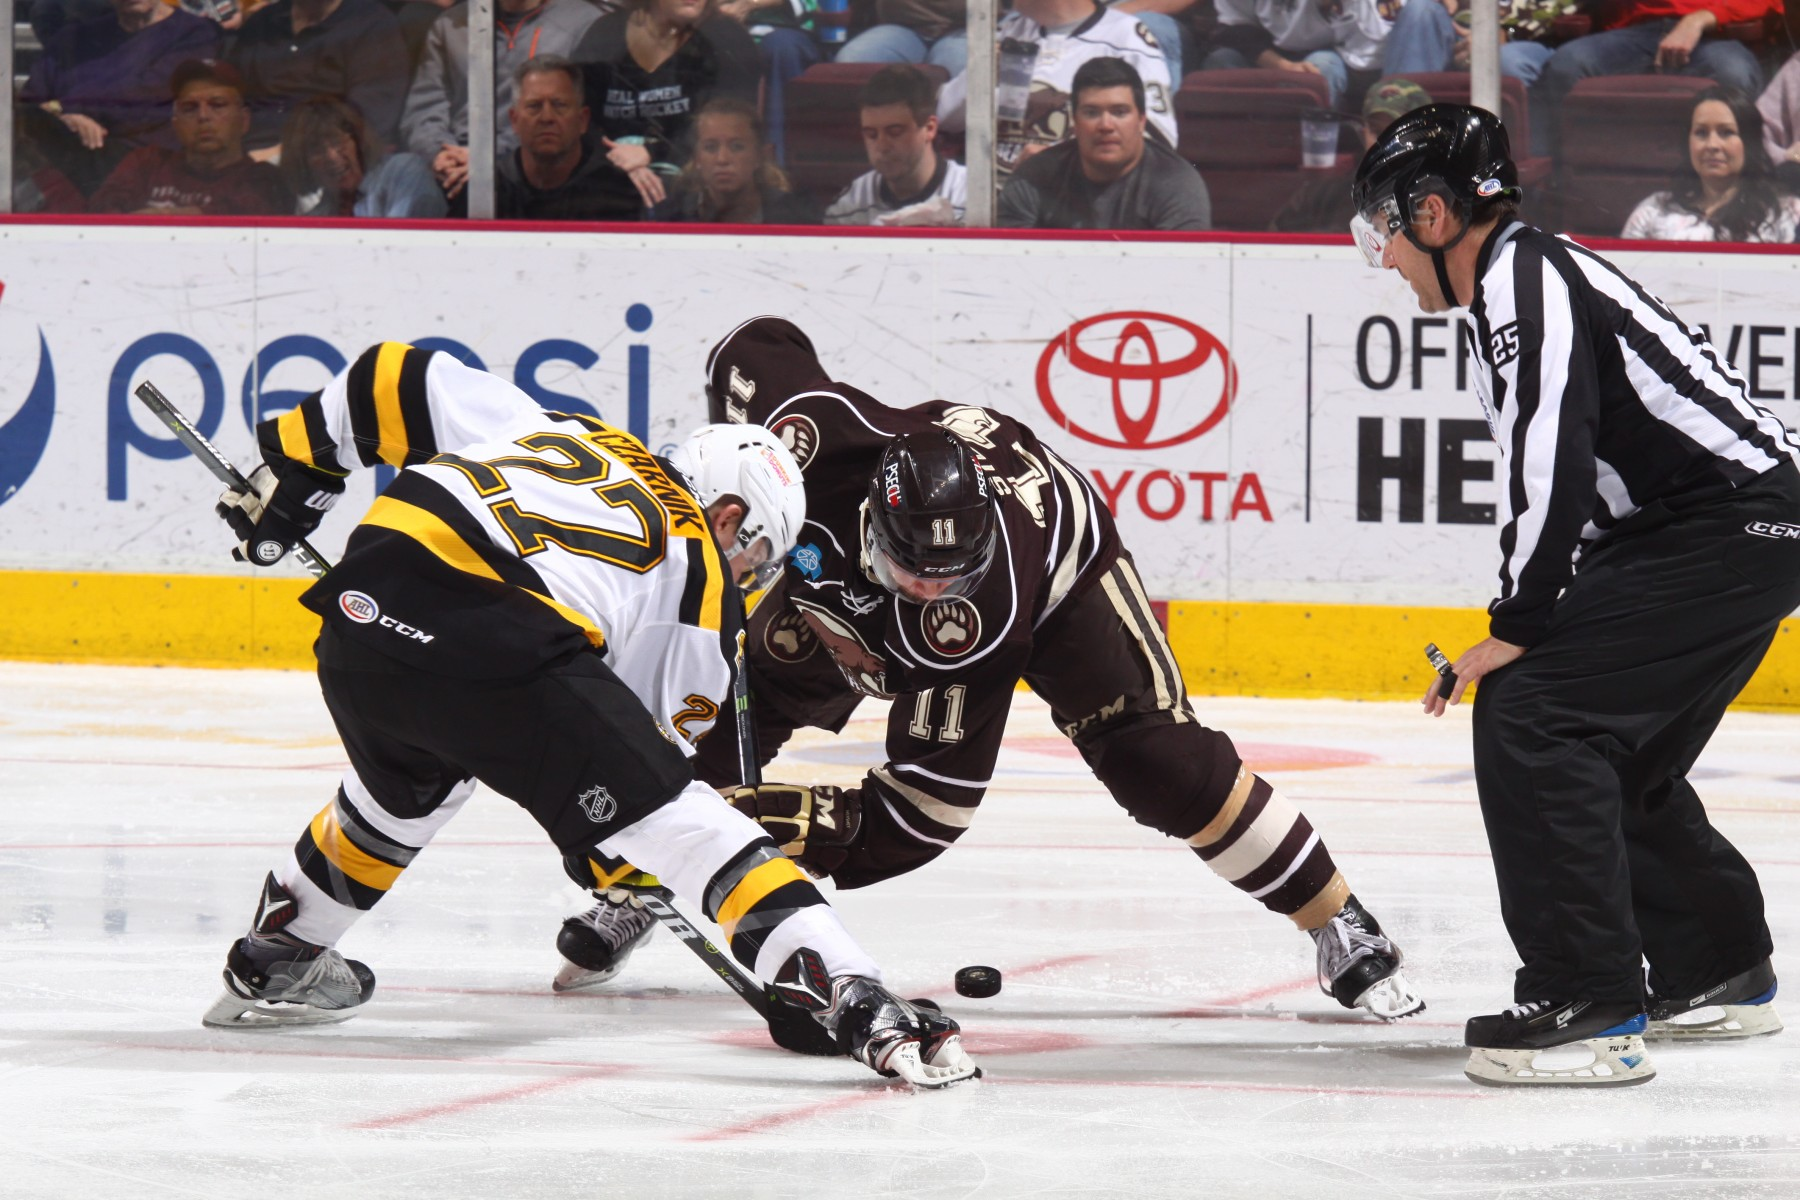 Hershey Bears take on the Providence Bruins in the second round of playoffs.